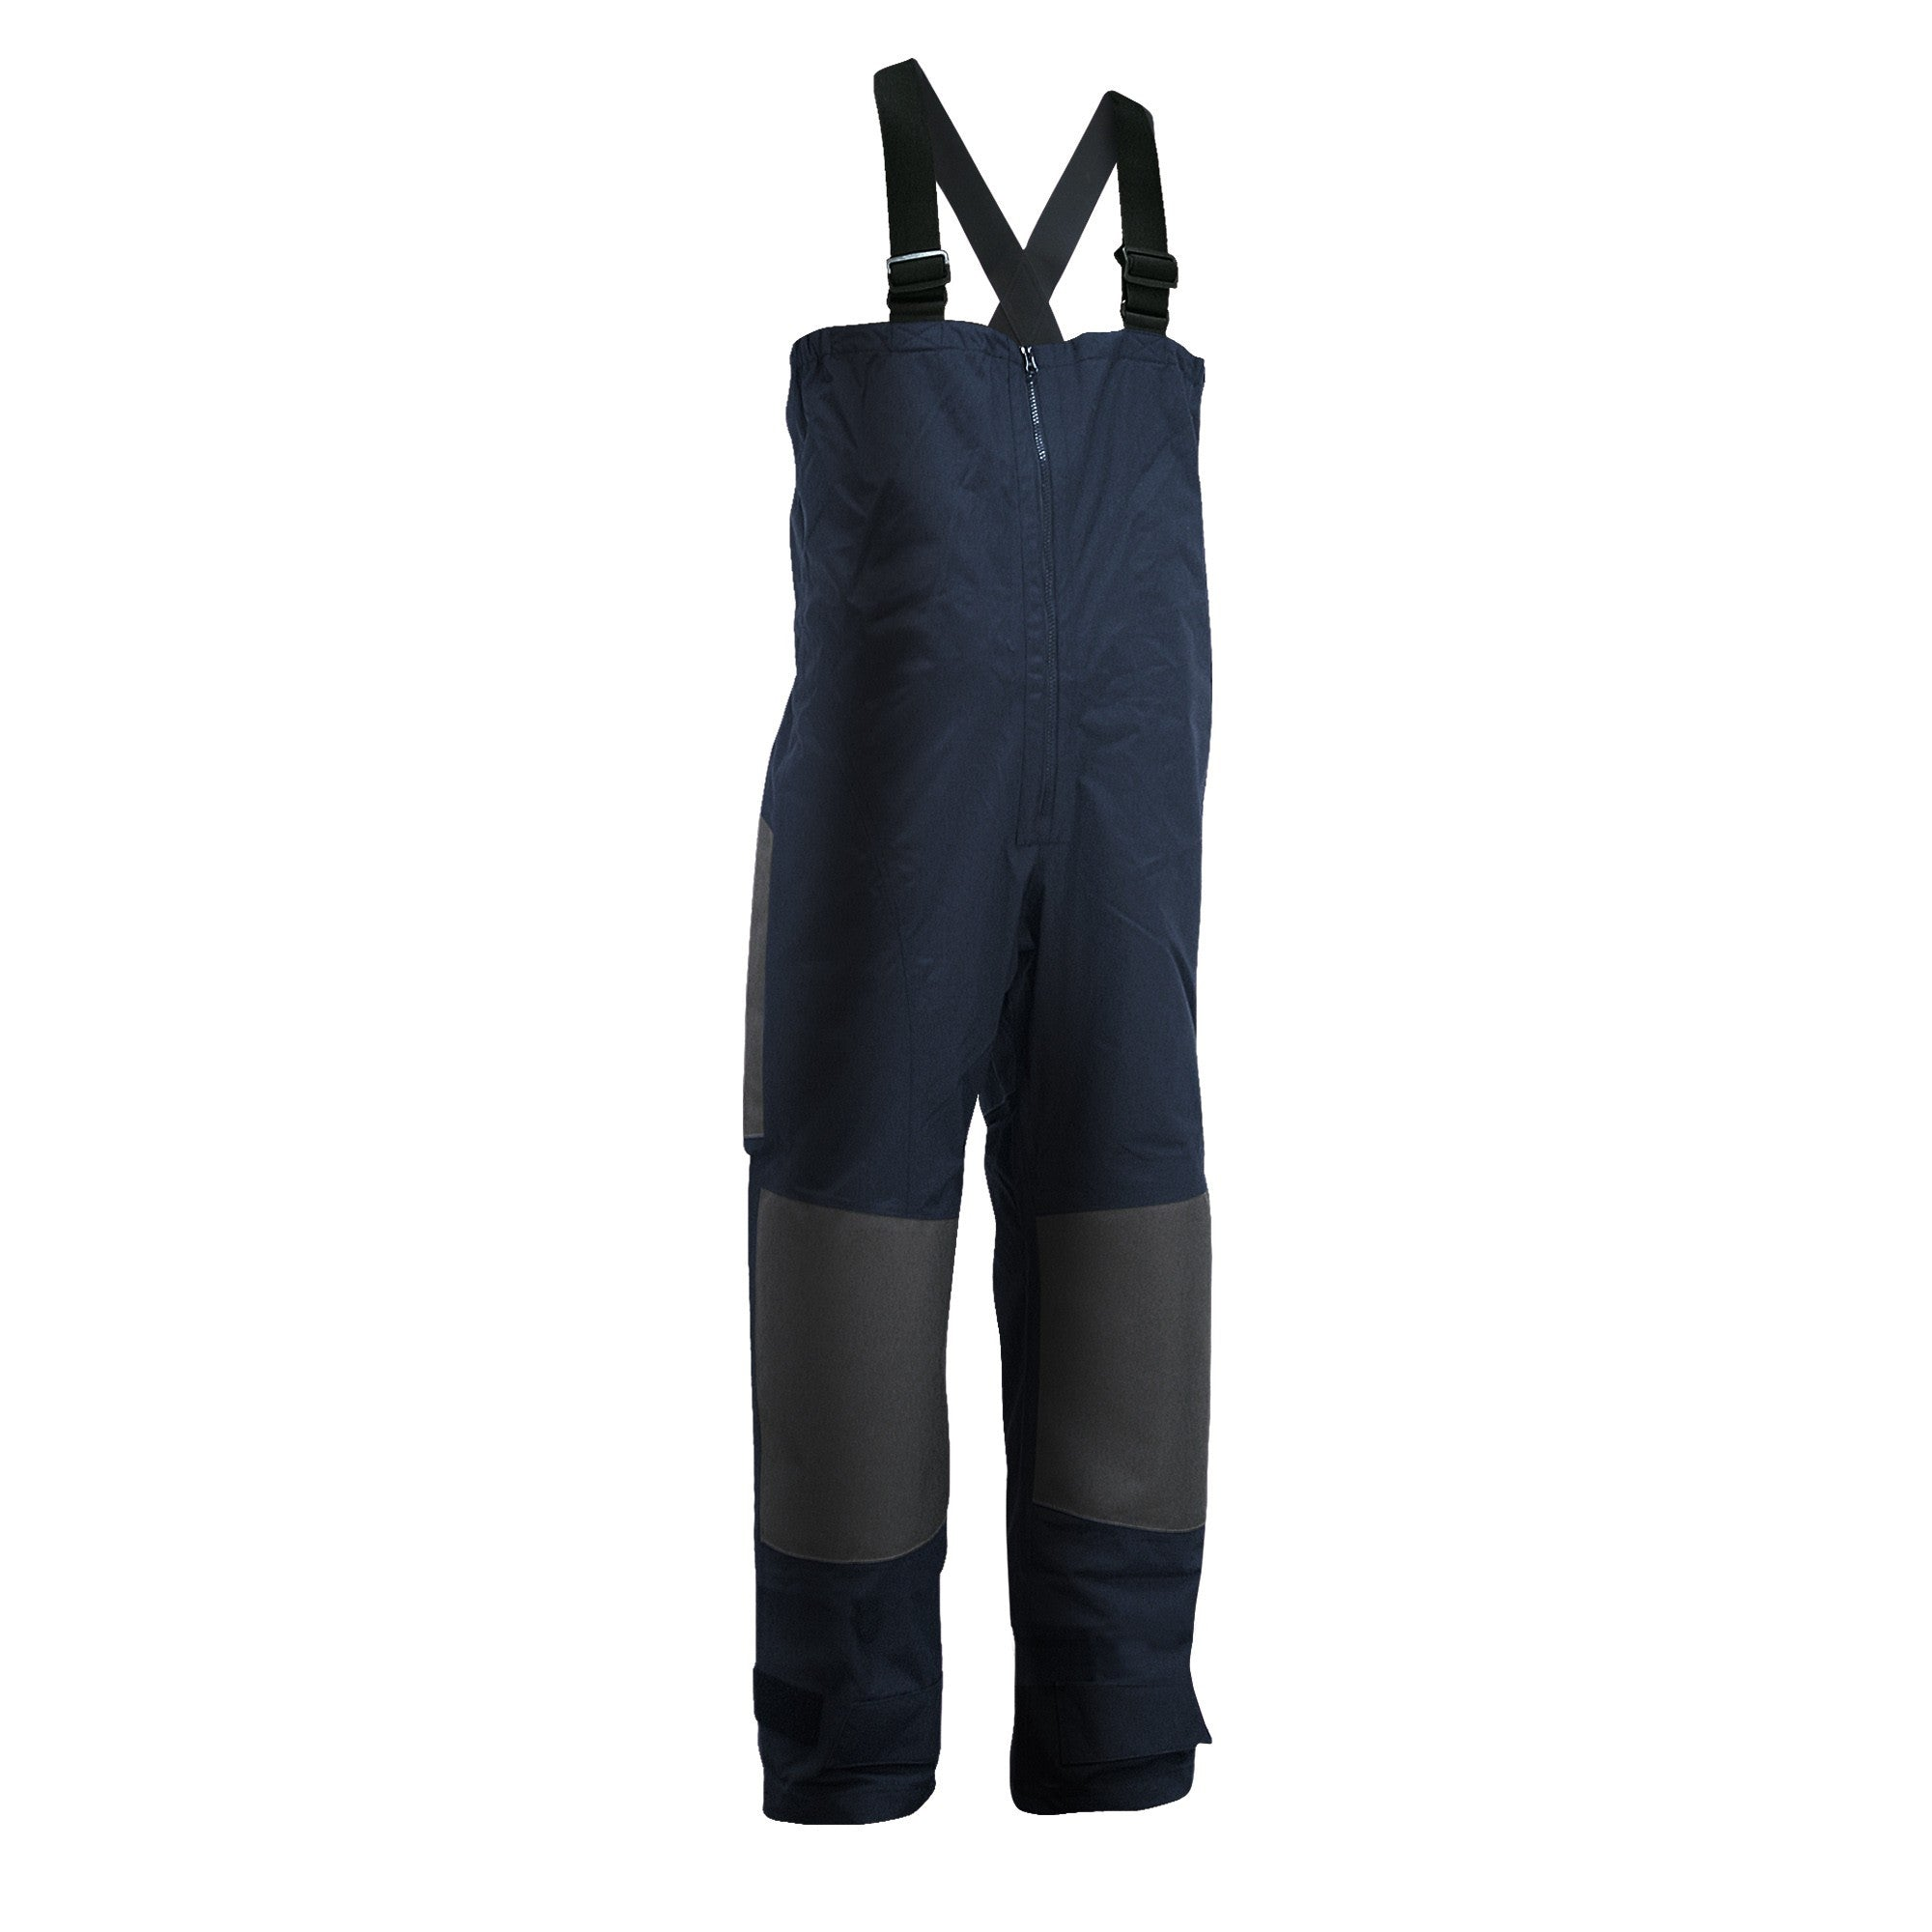 Force 1 Bib & Brace - Navy